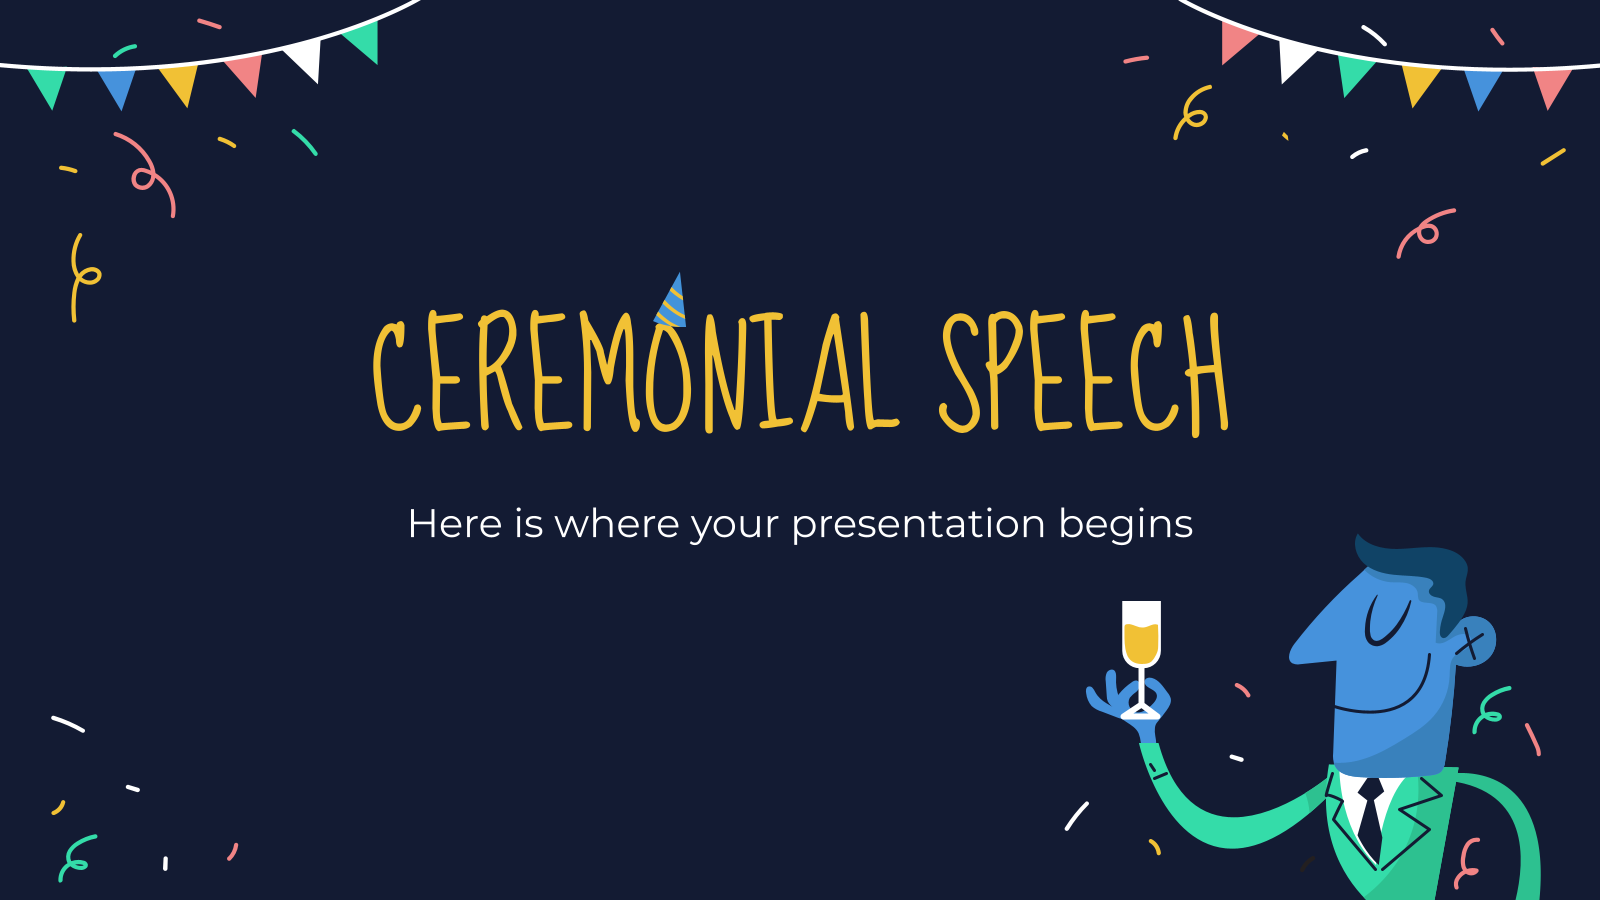 Ceremonial Speech presentation template